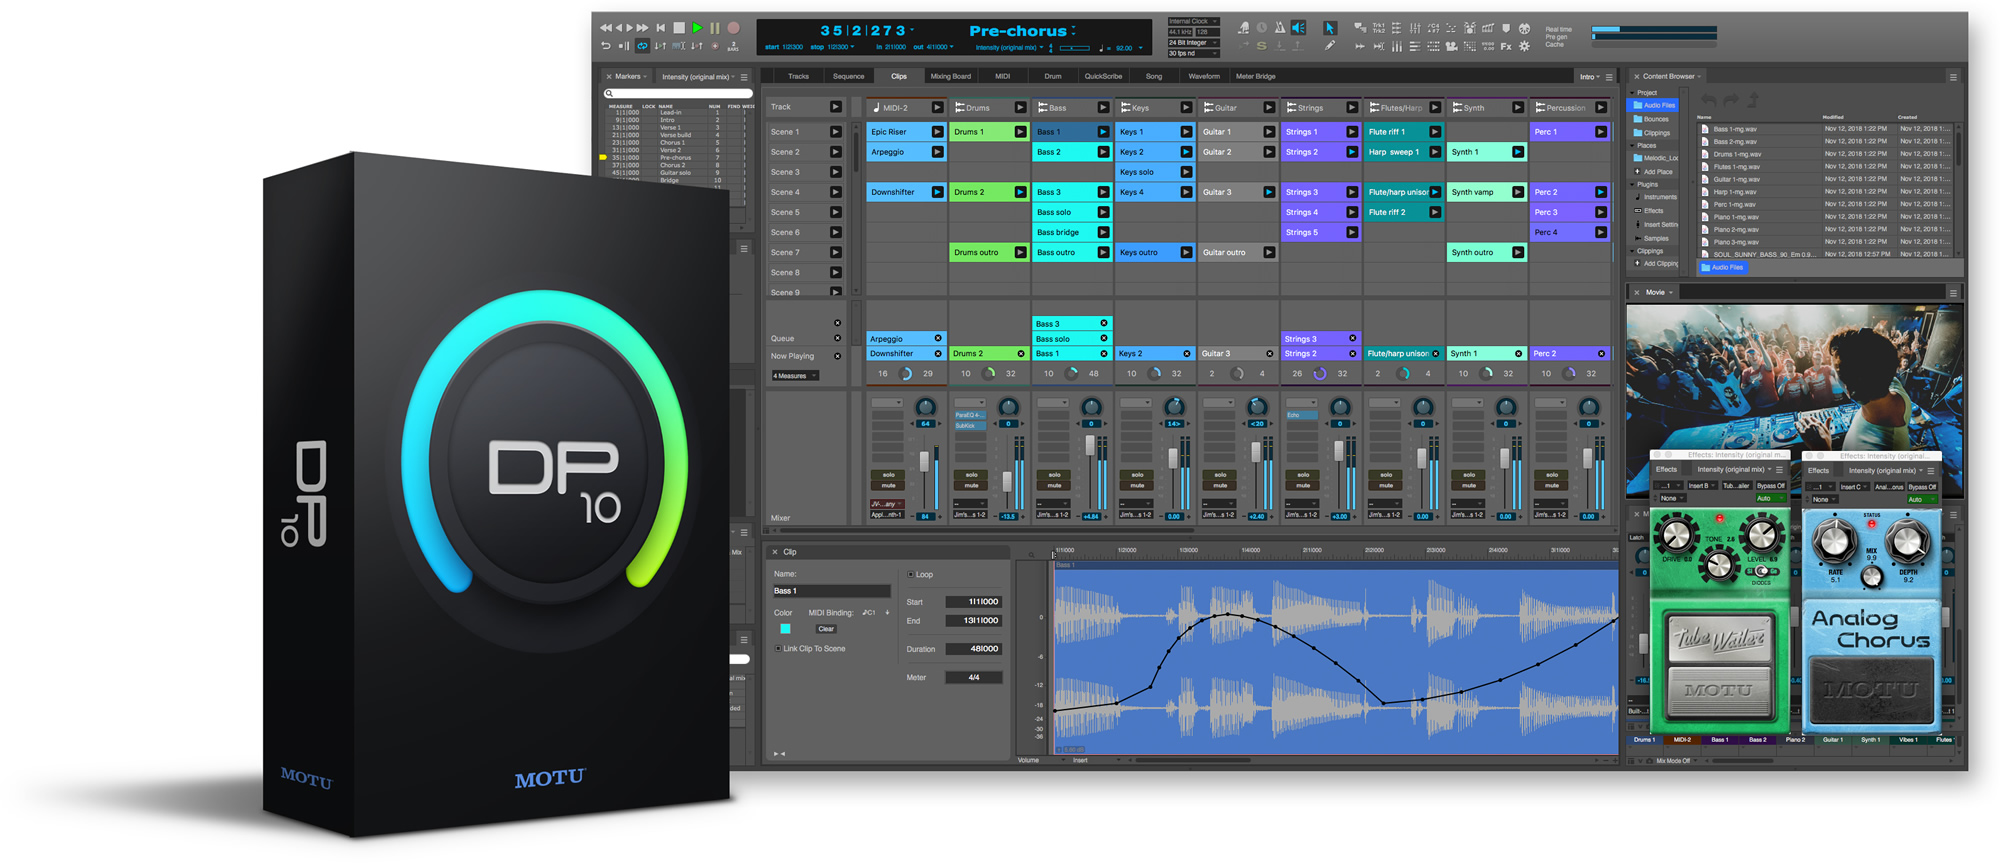 QnA VBage MOTU announces Digital Performer 10 - Clips Window, Stretch Audio, VCA Faders, VST3 plug-in support and More